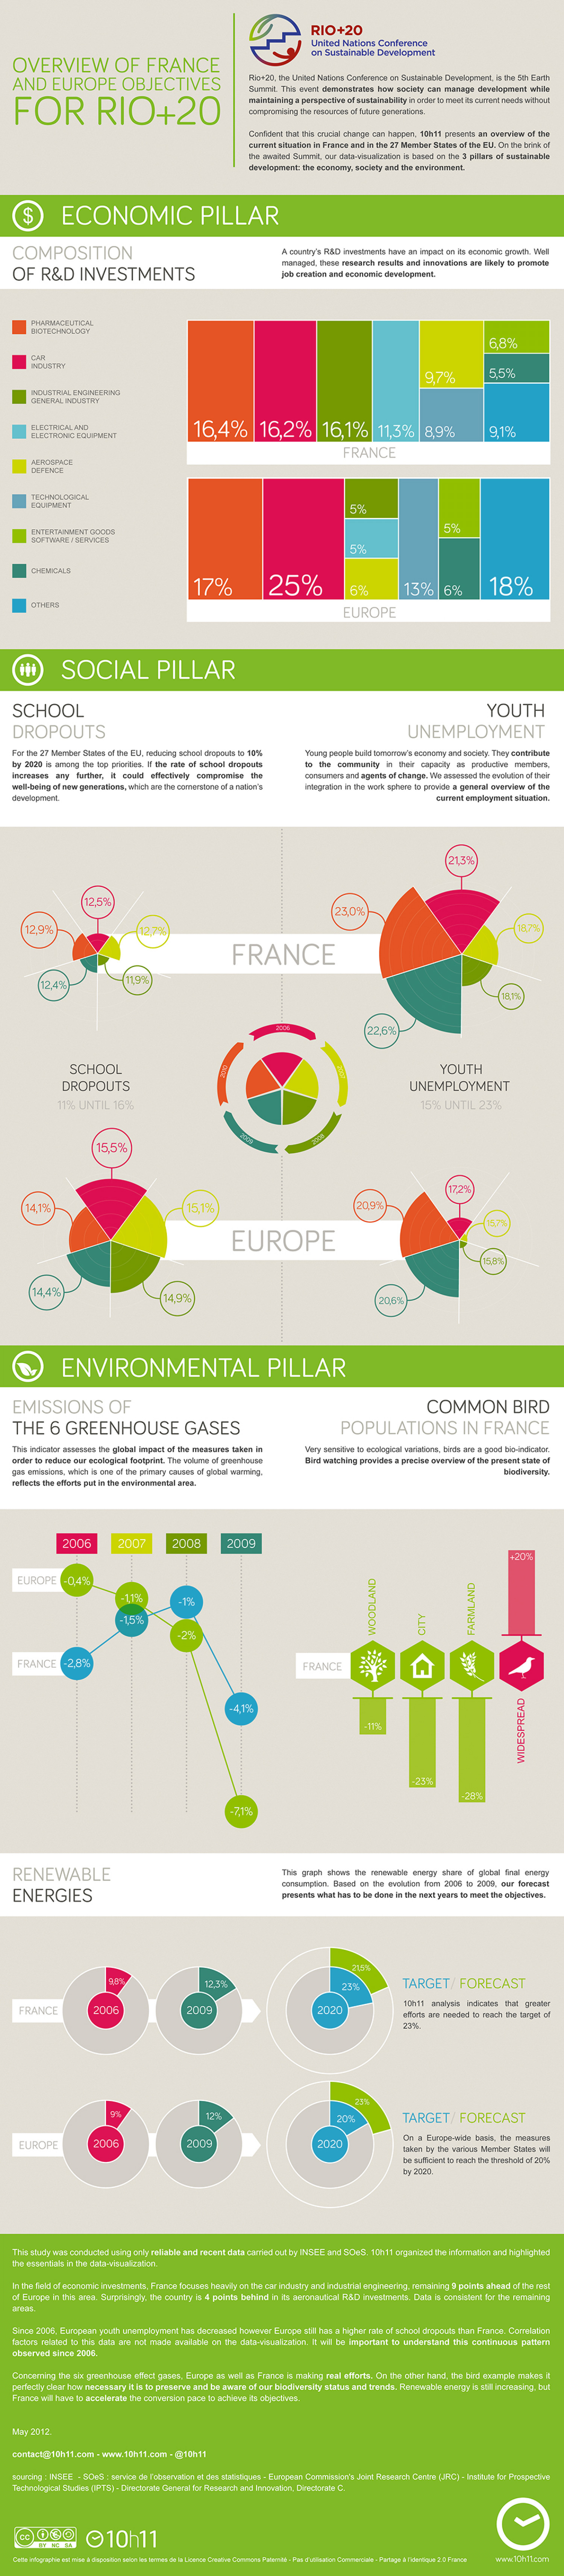 Overview of France and Europe objectives for Rio+20 Infographic